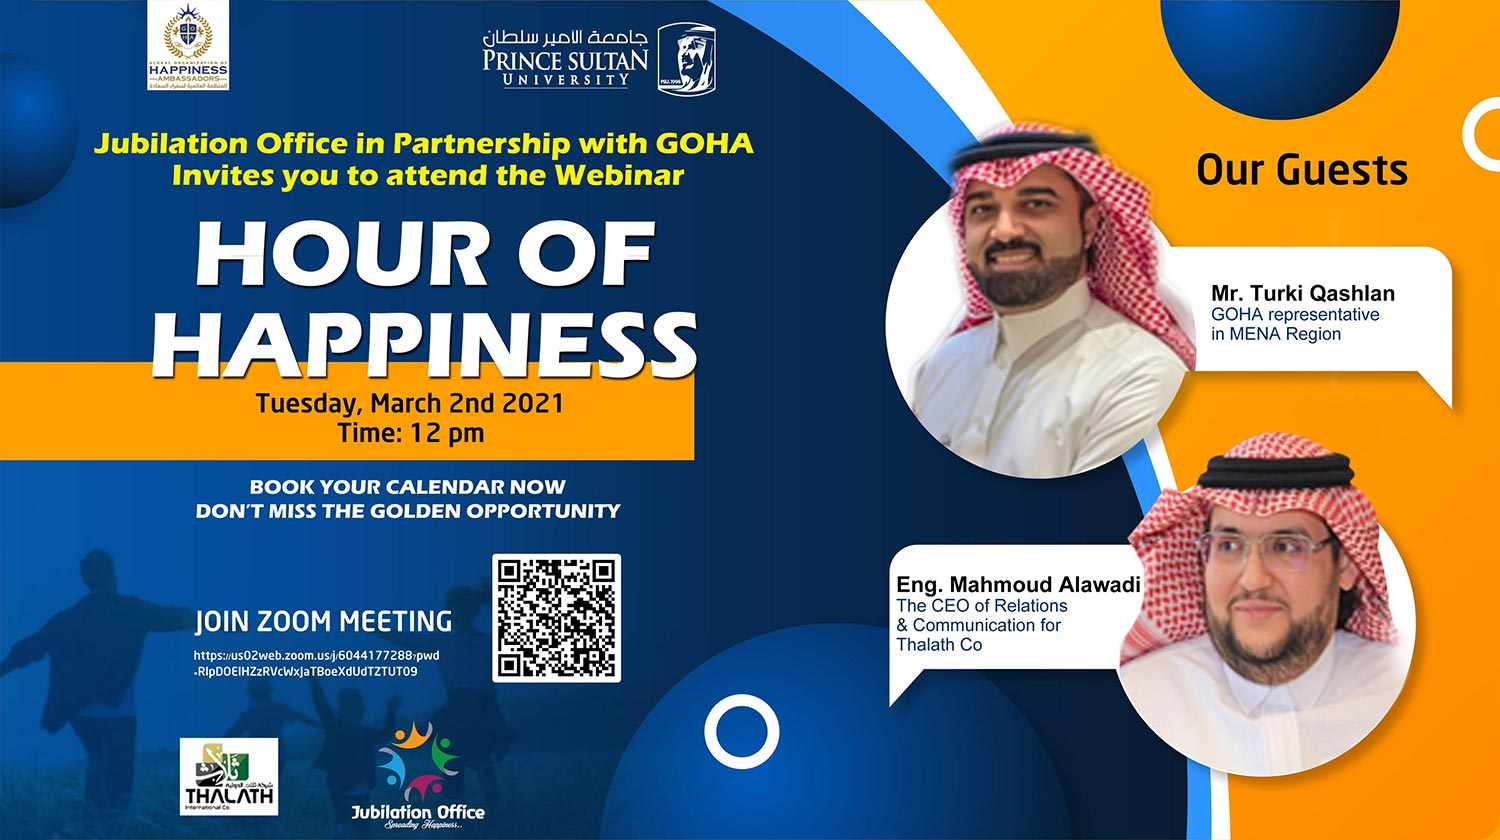 Event in Collaboration with GOHA (Global Organization of Happiness Ambassadors)